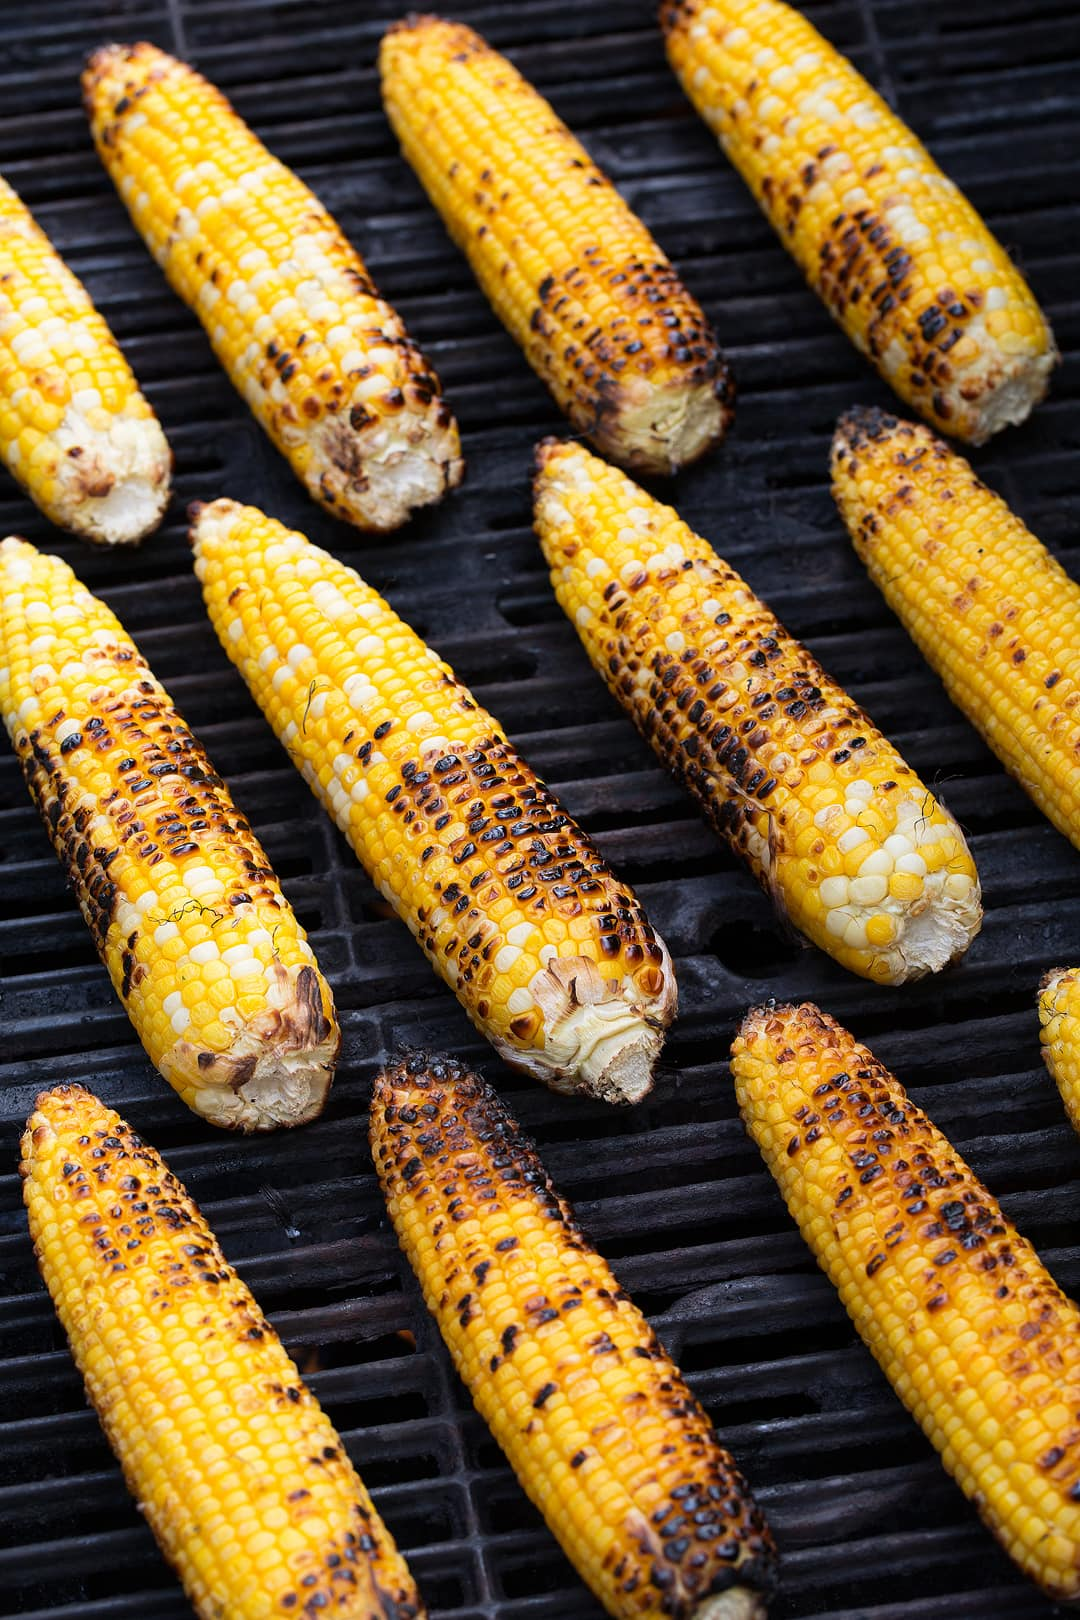 12 cobs of fresh corn on a grill to make Mexican Street Corn.